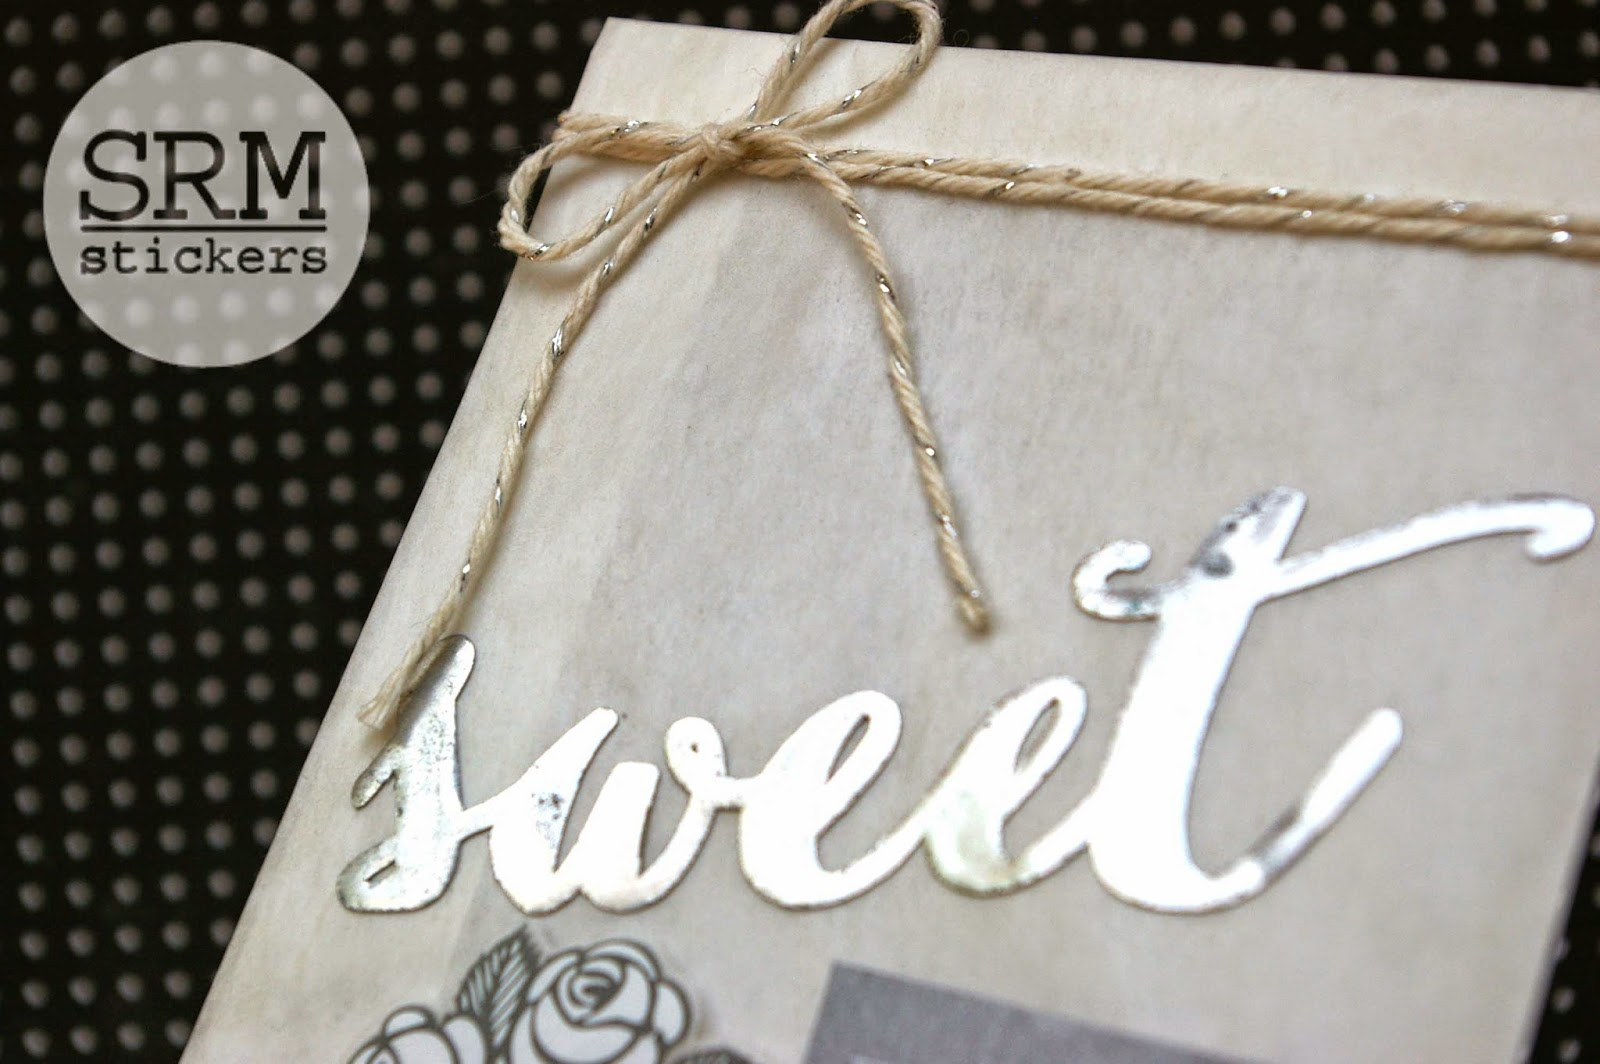 SRM Stickers Blog - Sweet Love Wedding Gift by Lorena - #glassinebag #shimmertwine #twine #stickers